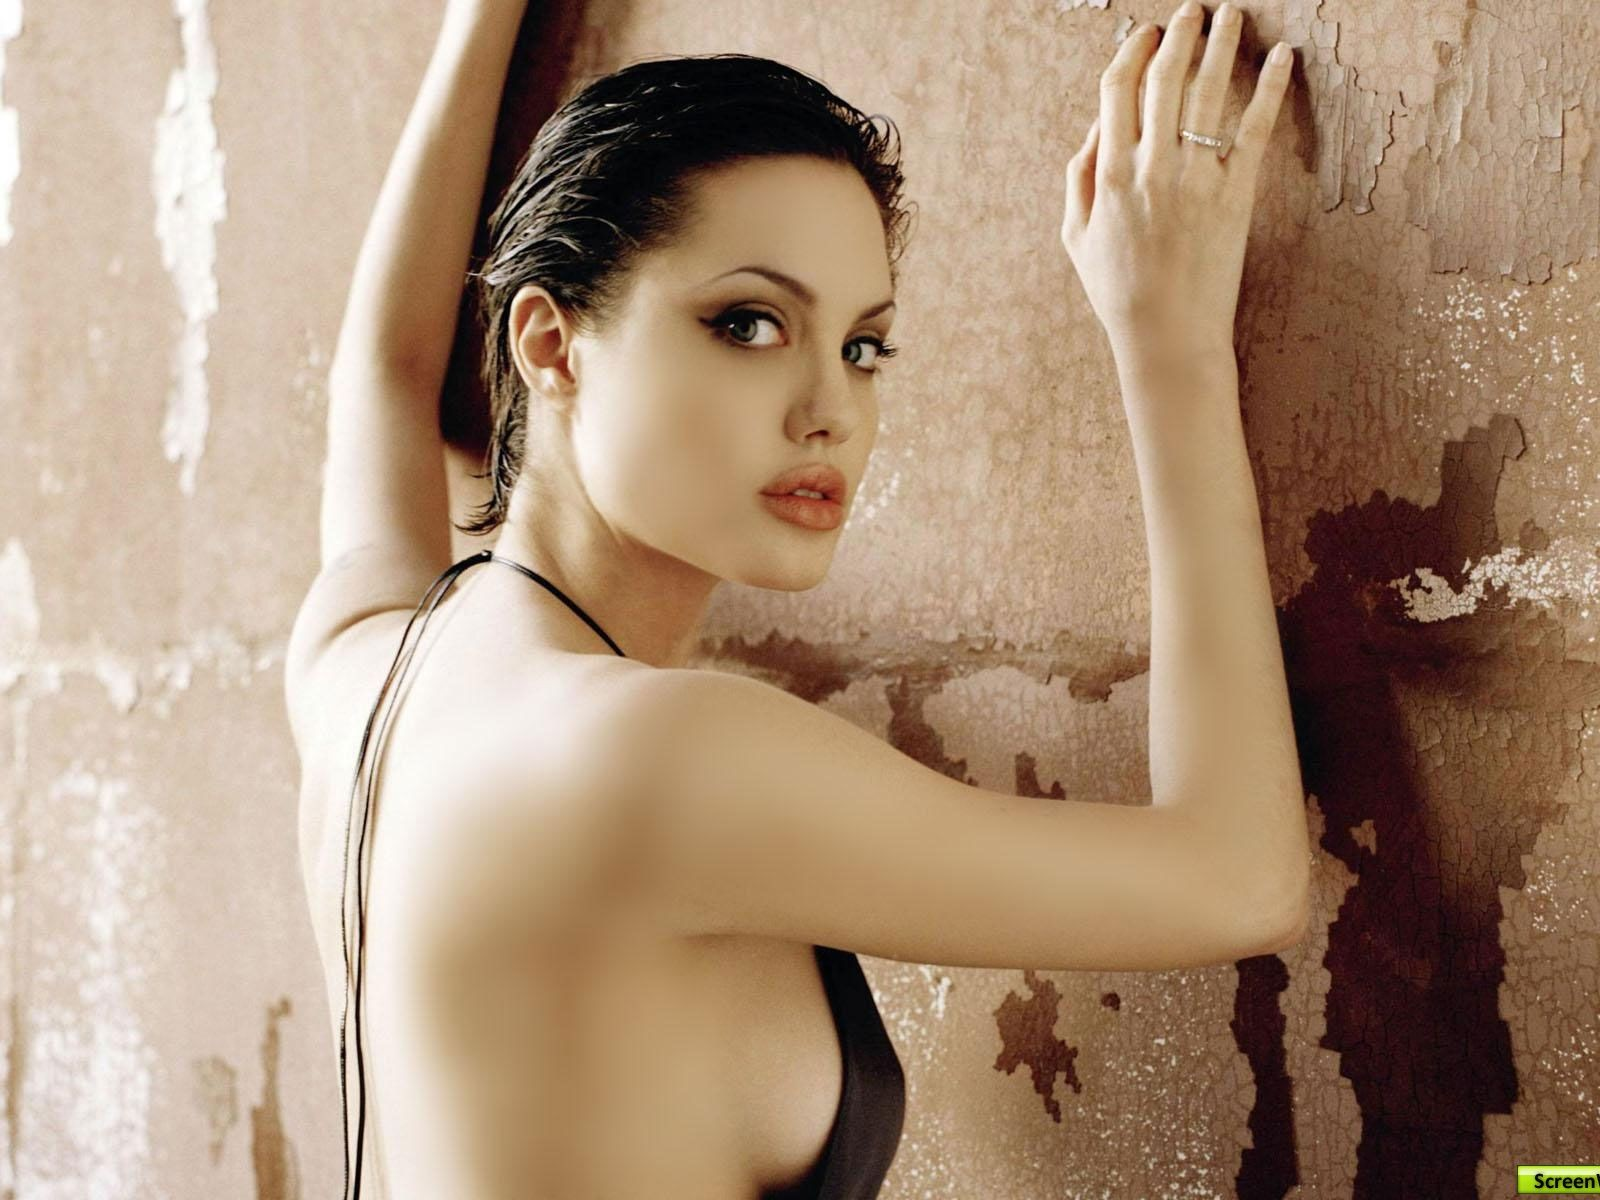 http://4.bp.blogspot.com/-269JqOj684k/UC9bR8tVnCI/AAAAAAAAApg/iXdgpwInQ_w/s1600/Angelina-Jolie--super-super-actress-hollywood-star-pictures-wallpapers-widescreen-supermodel-psupero-gallery-widescreen-wallpaper-latest-wallpapers-1600x1200.jpg